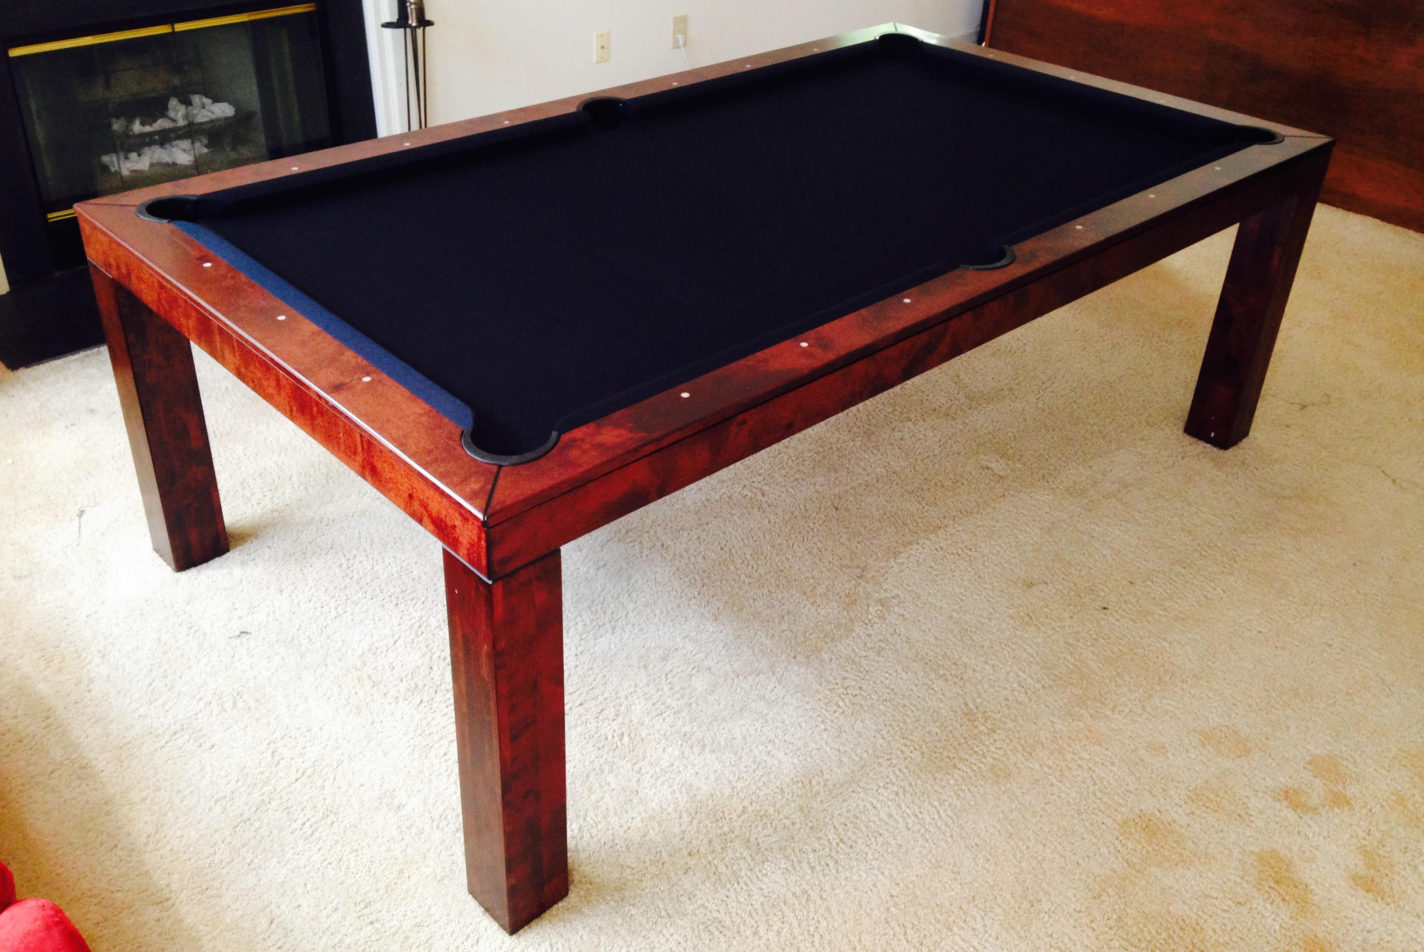 Vision Convertible Pool Table, North Carolina